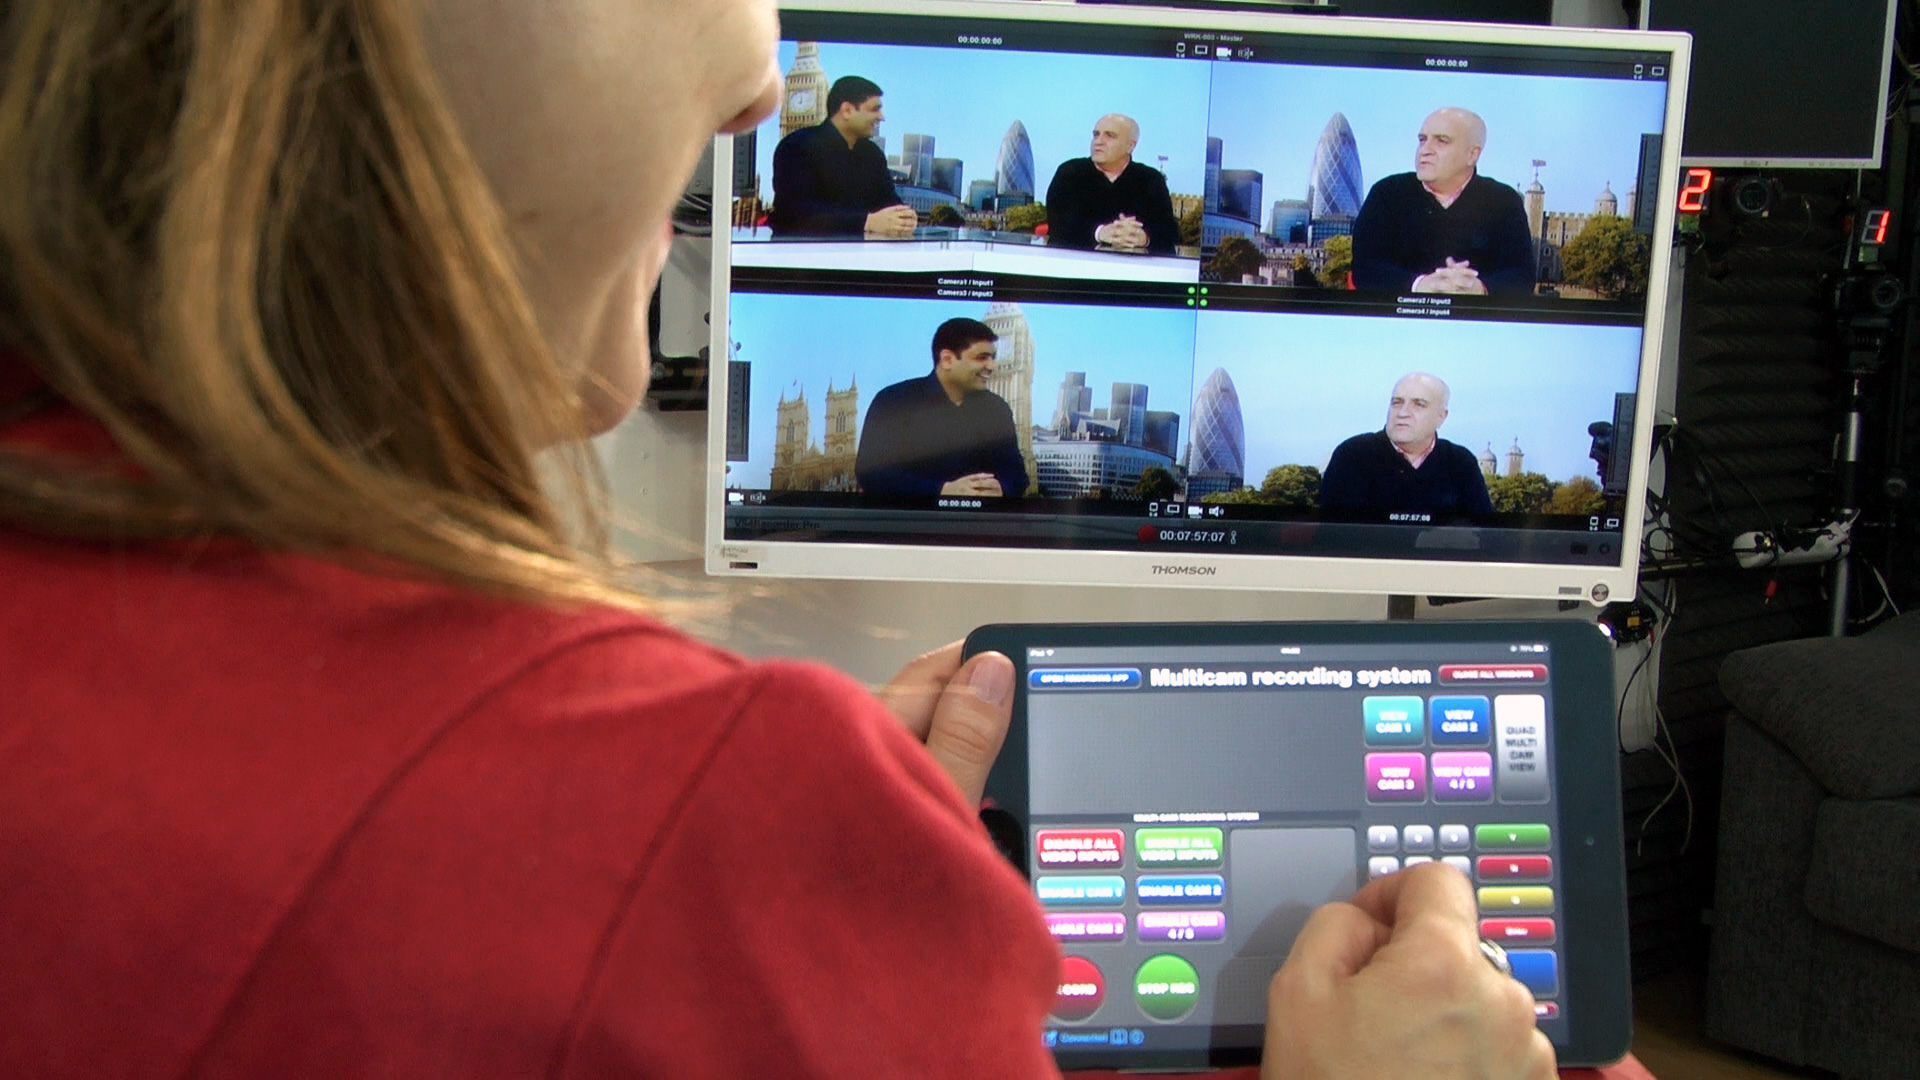 BritishEnglish.TV producers see all camera inputs using Matrox VS4Recorder Pro as a multiviewer.